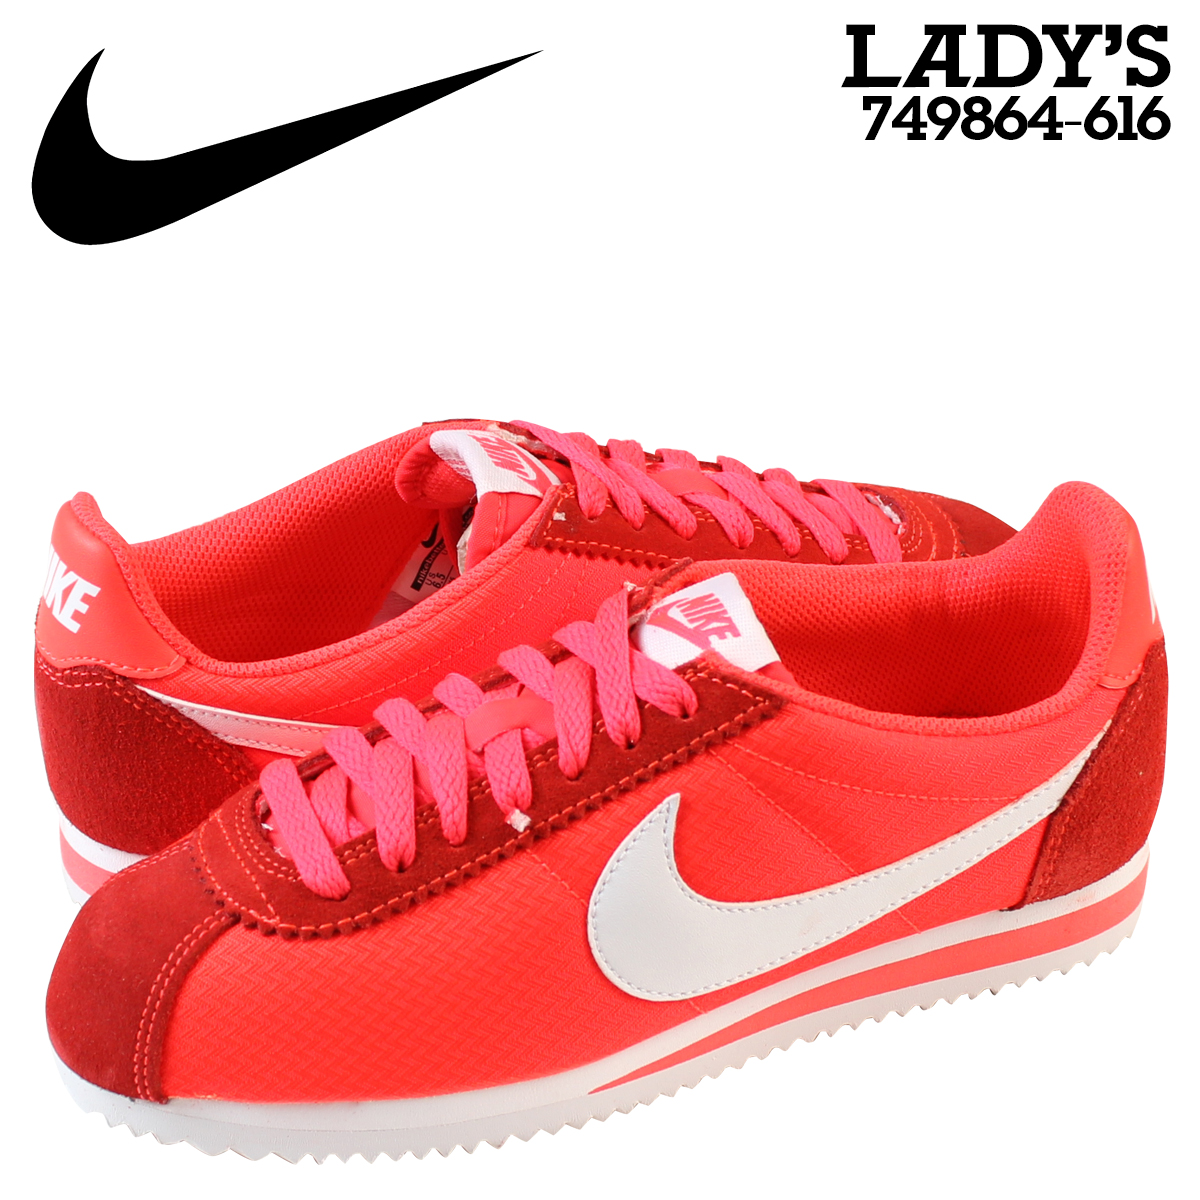 Whats up Sports | Rakuten Global Market: NIKE Nike classic Cortez sneakers  Womens WMNS CLASSIC CORTEZ NYLON 749864-616 Crimson shoes Red